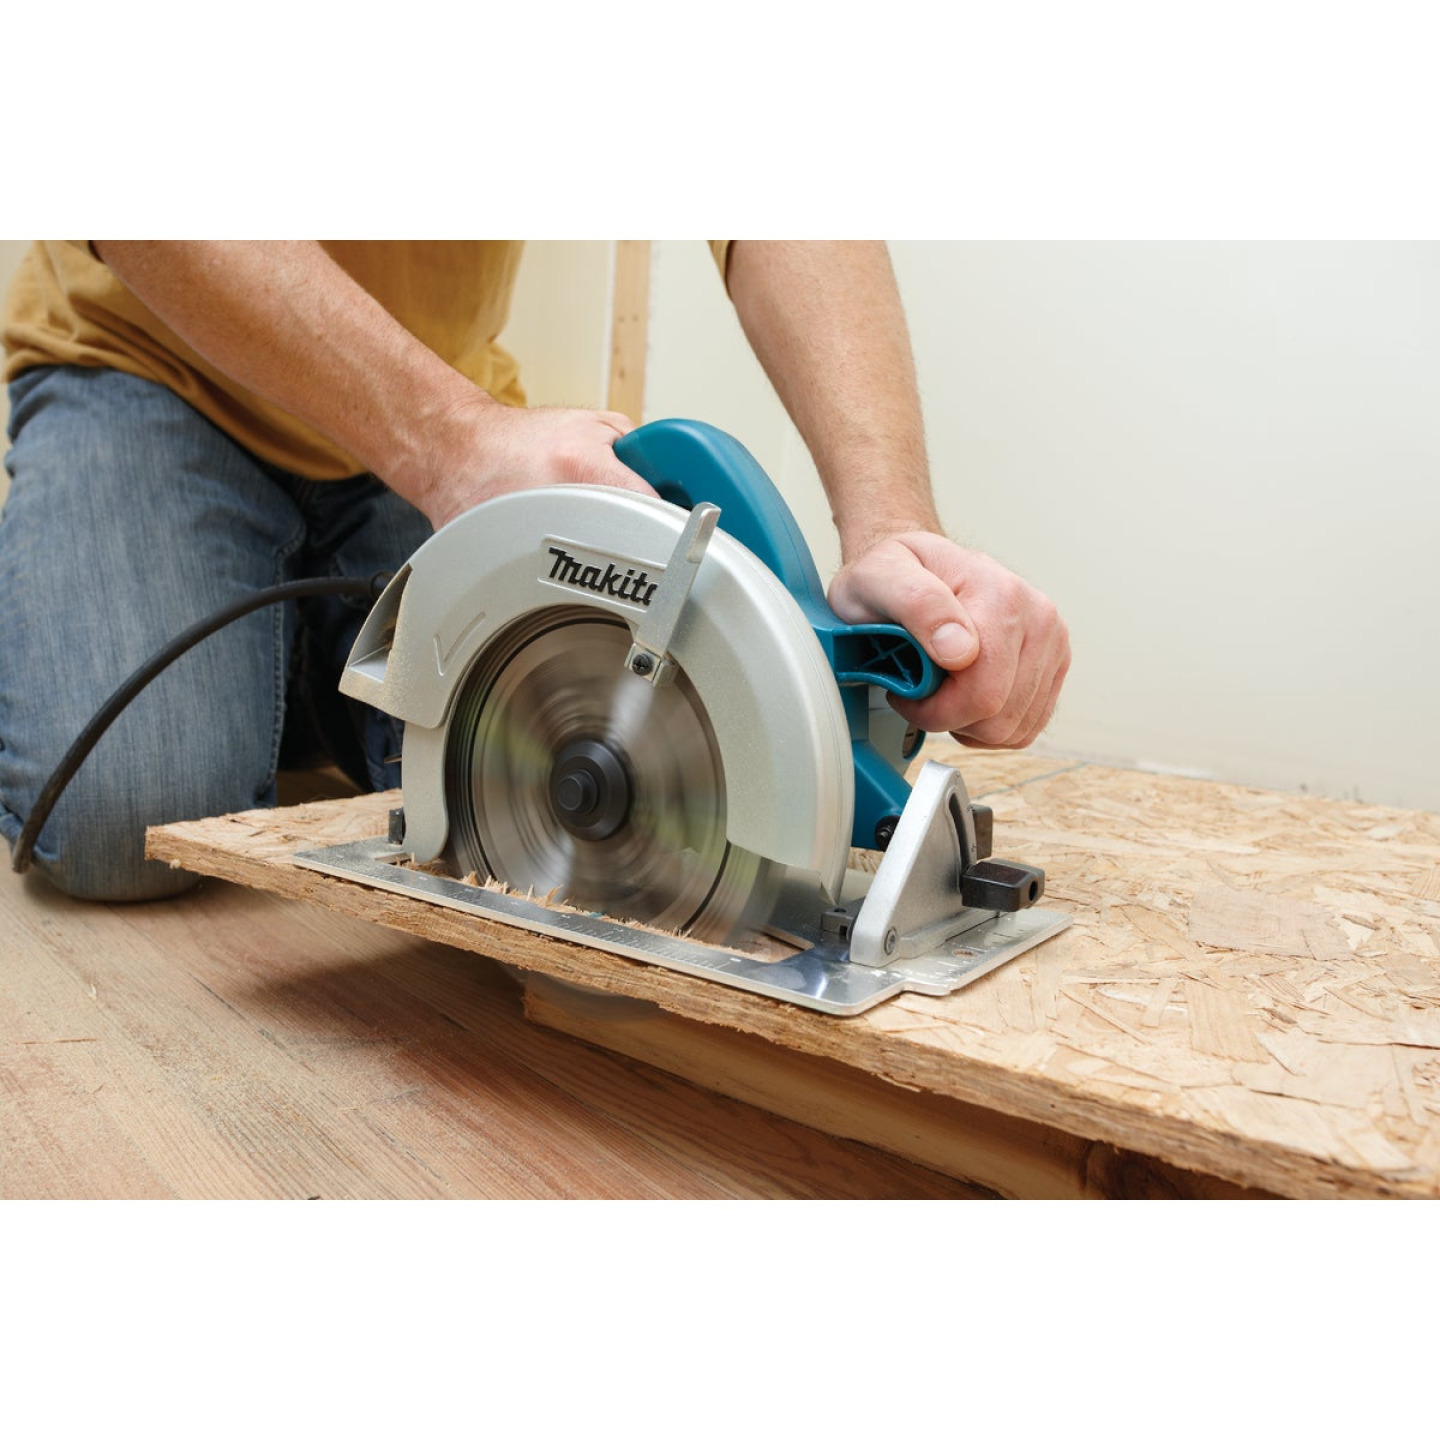 Makita 7-1/4 In. 15-Amp Contractor Circular Saw Image 2